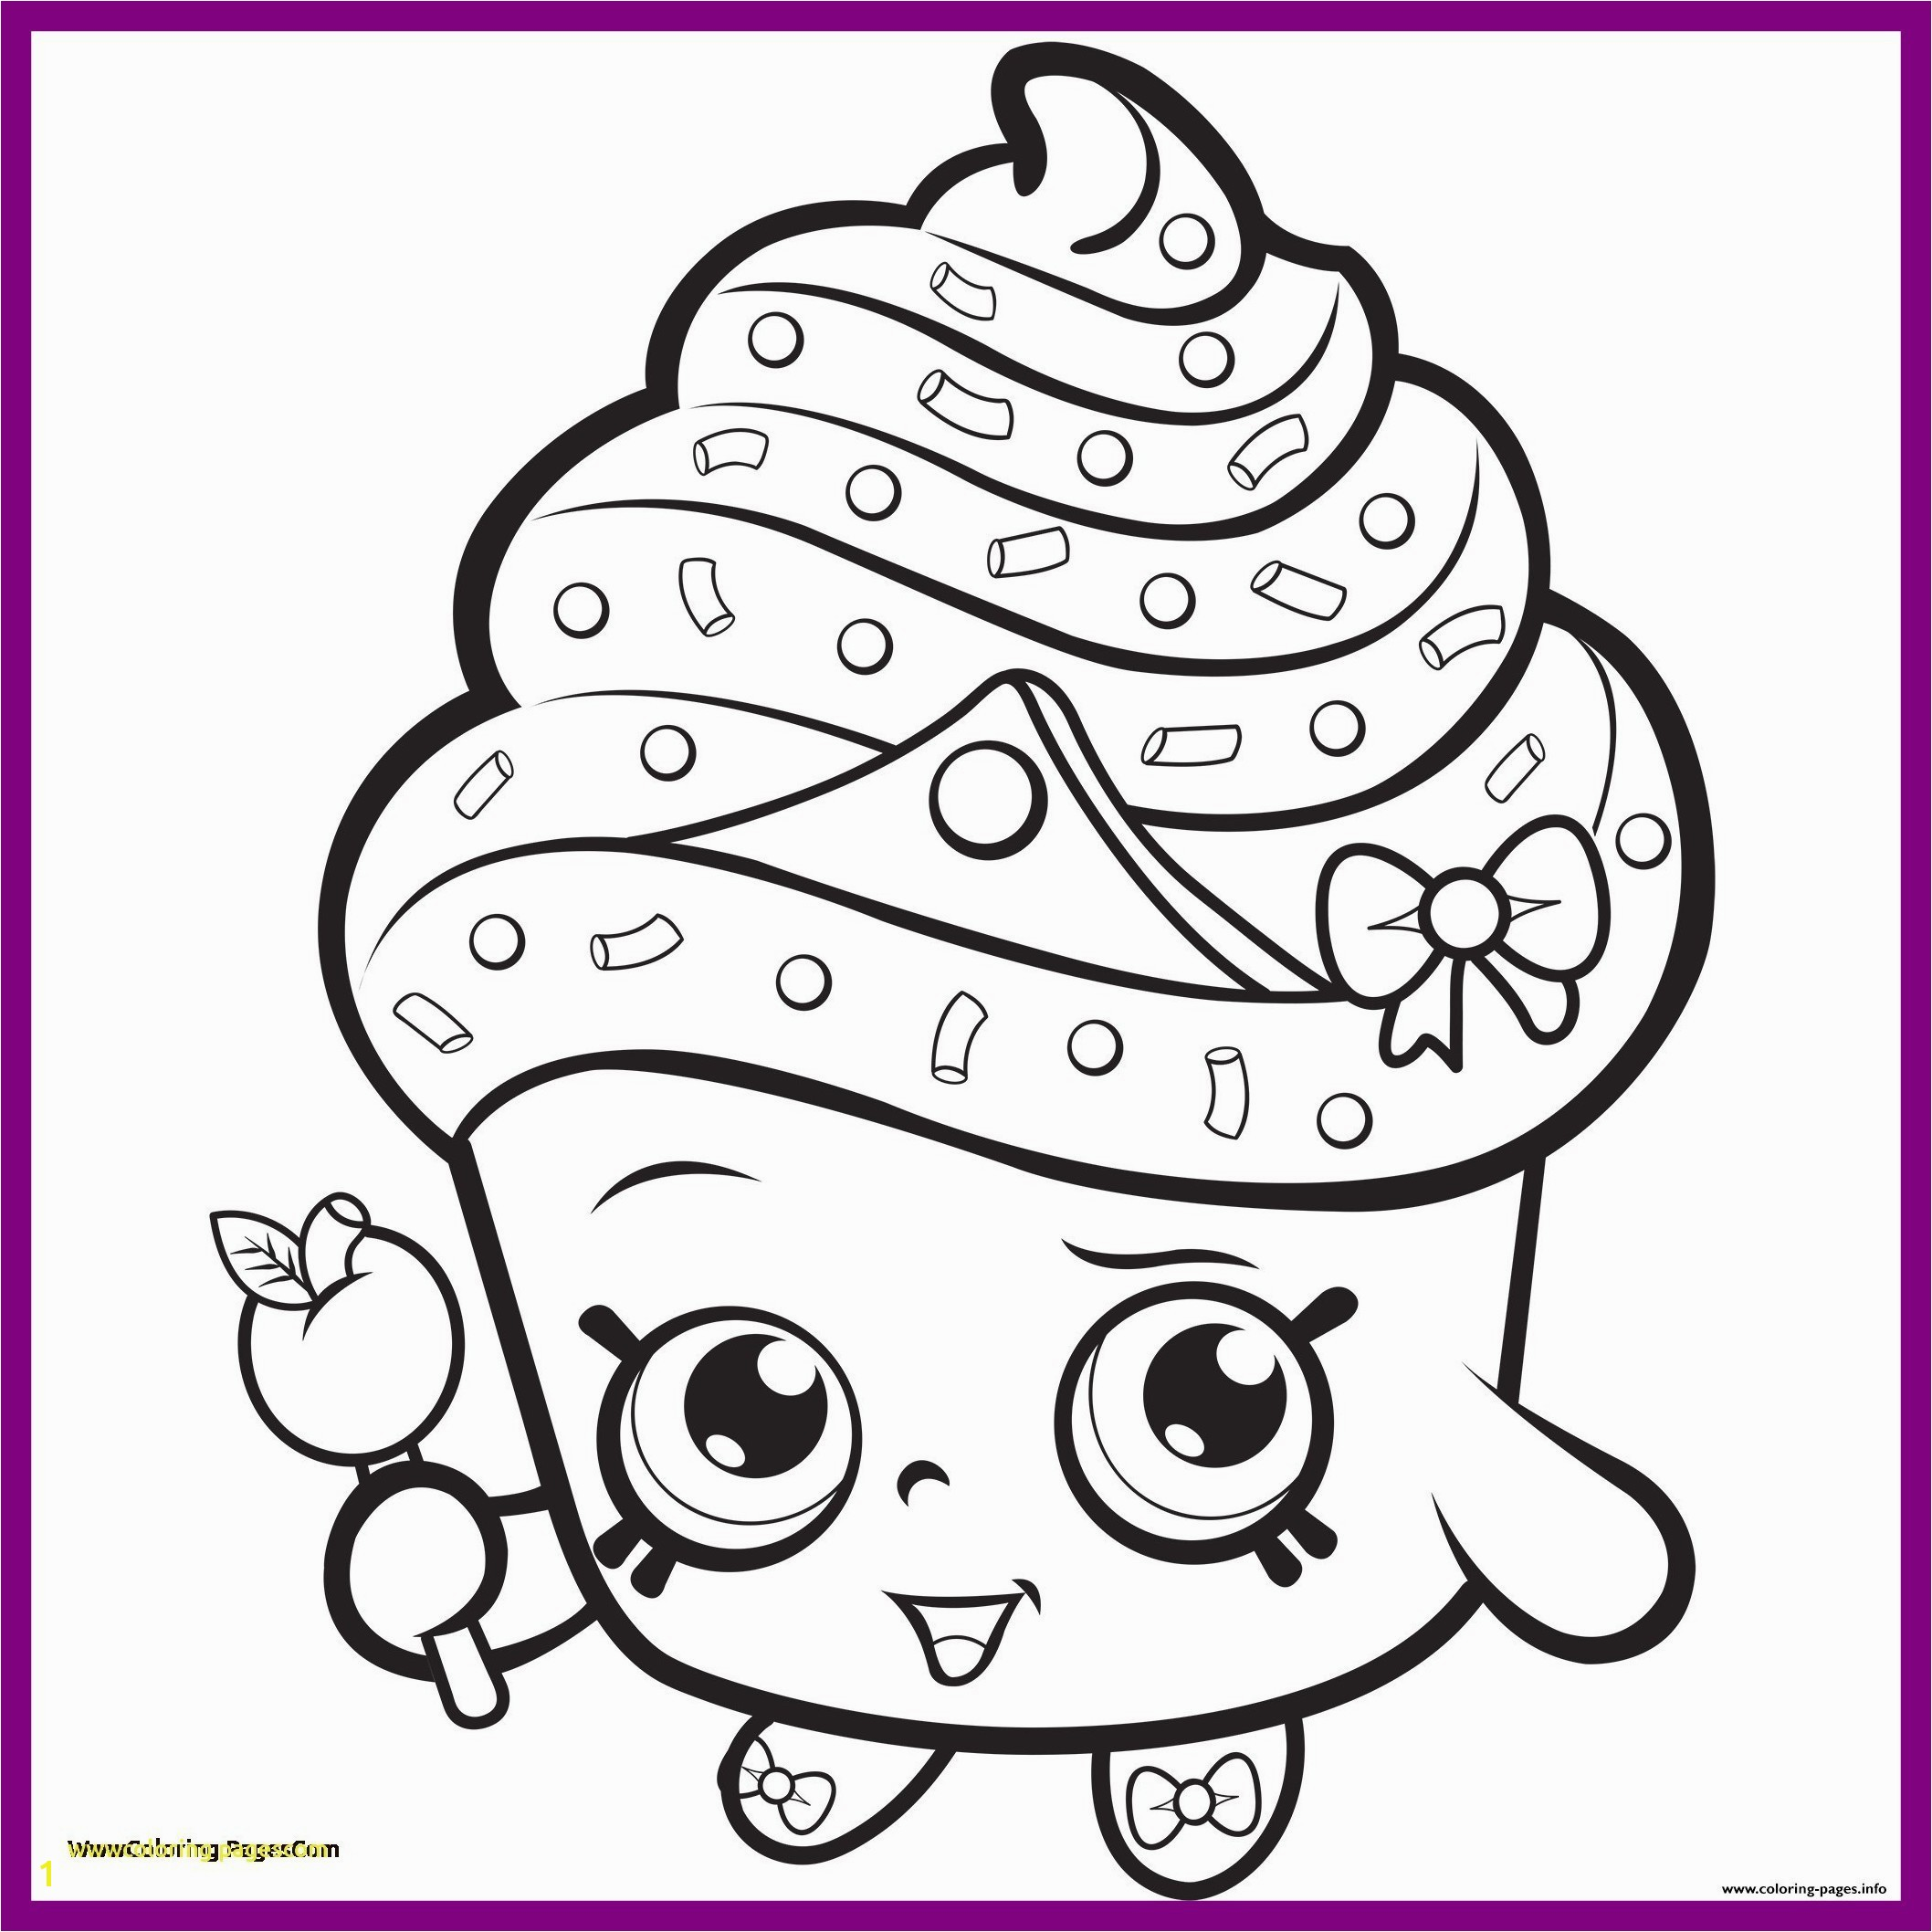 Coloring Page Cake Decorating Coloring Book Coloring Book Info Best Bookfo Minnie Best the Best